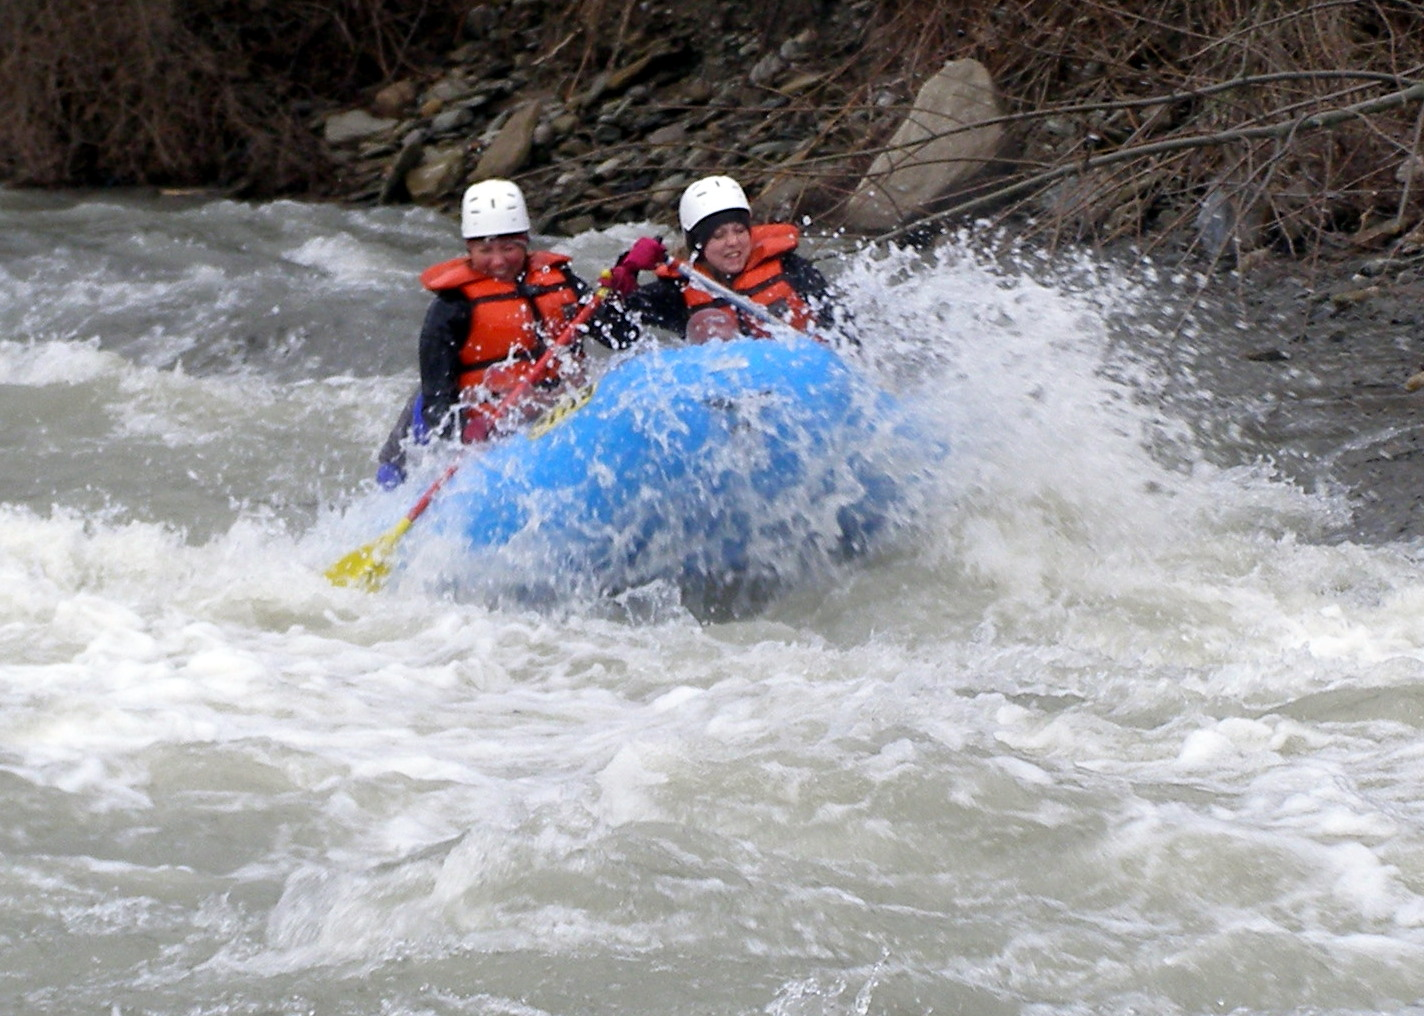 Whitewater Rafting | Enchanted Mountains of Cattaraugus County, New